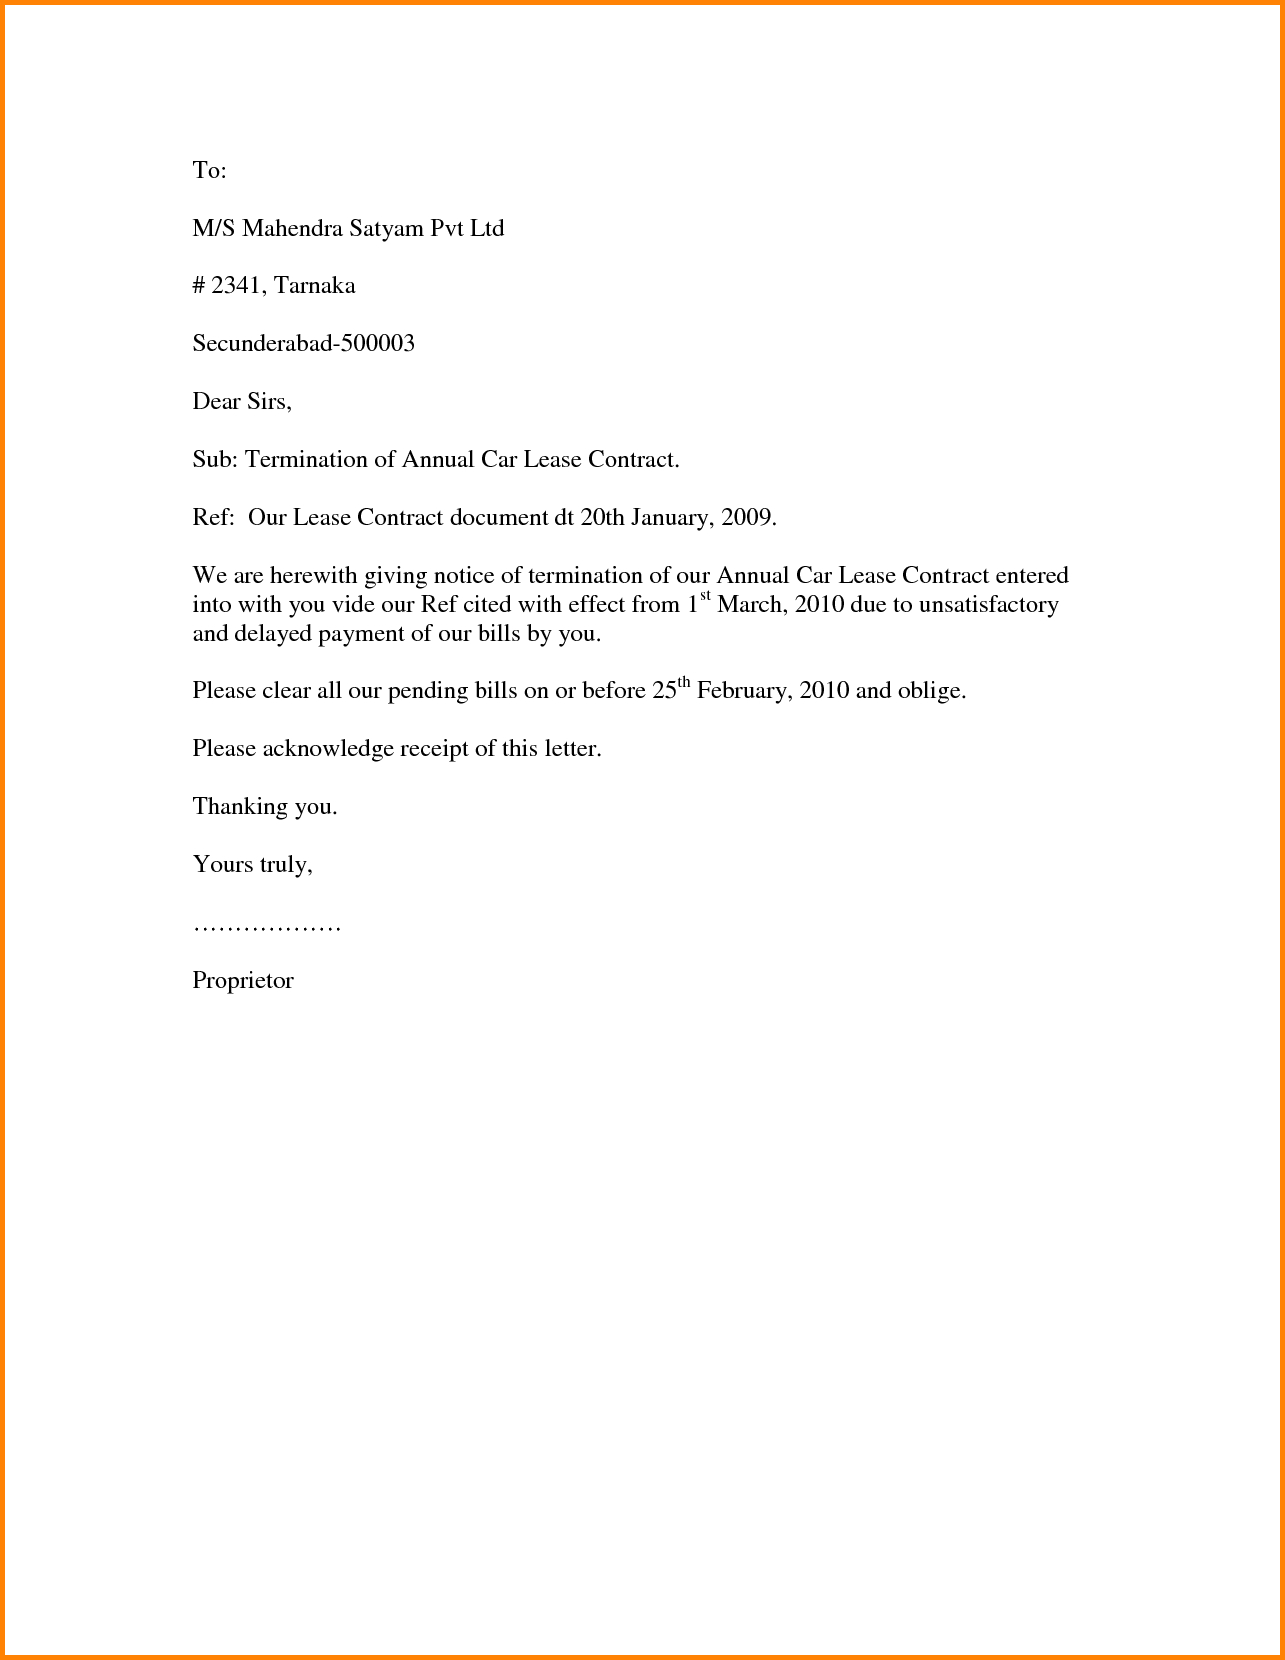 rent free letter from parents template example-Letter Template To End A Contract Copy Contract Letter Work Sample 3-n